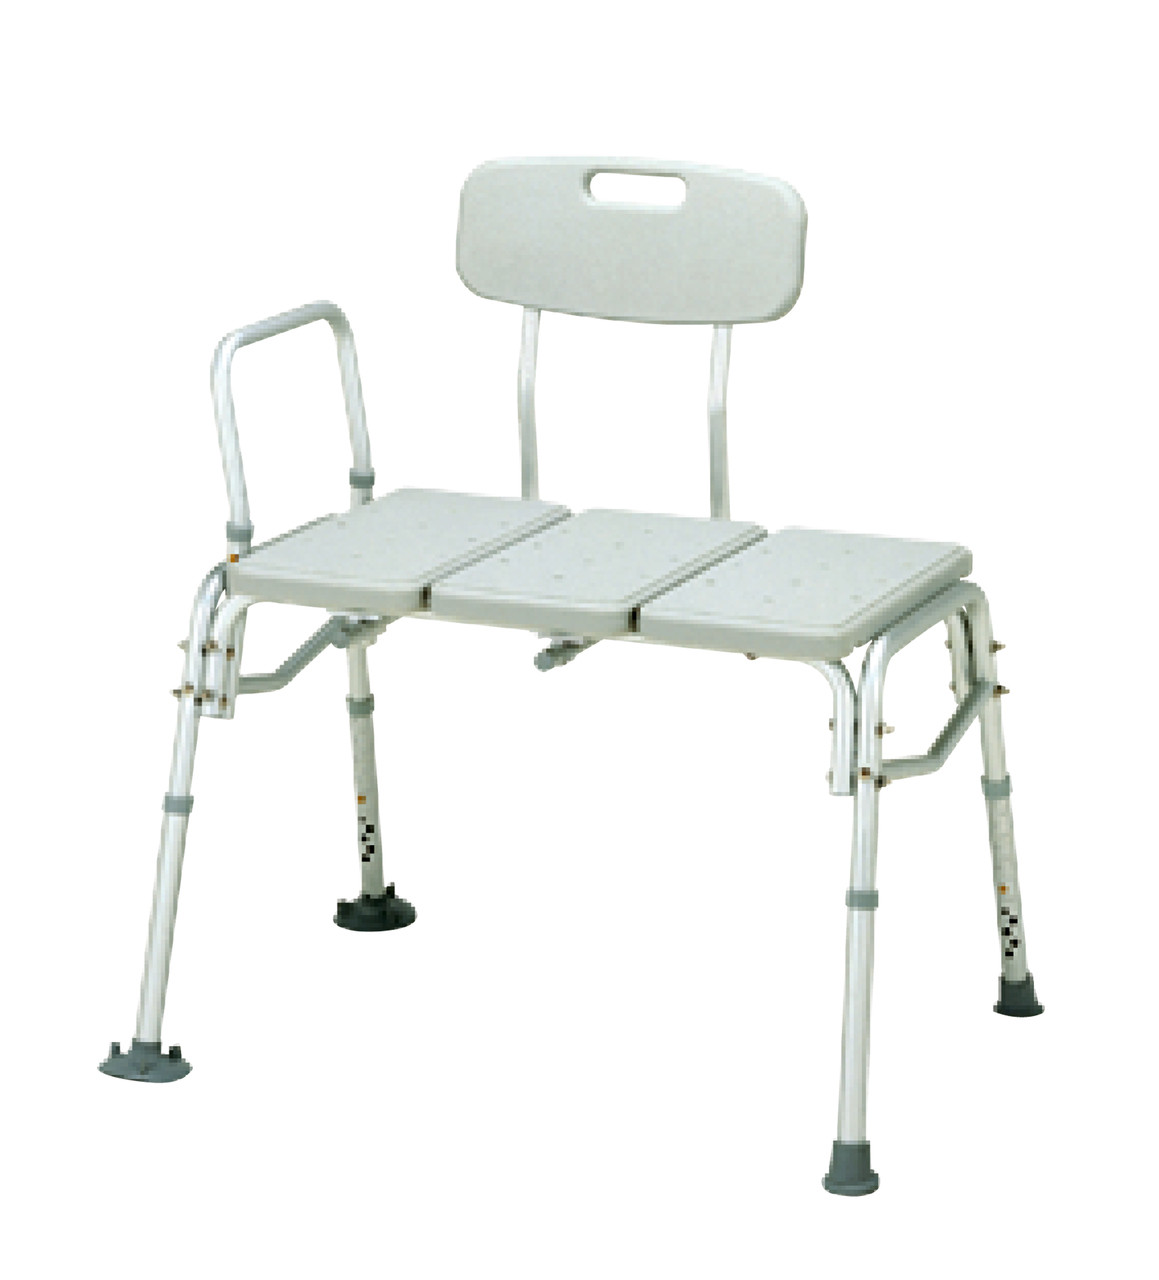 Fine Bariatric Transfer Bench Probasics Bsbtb 500 Lb Wt Cap Dailytribune Chair Design For Home Dailytribuneorg